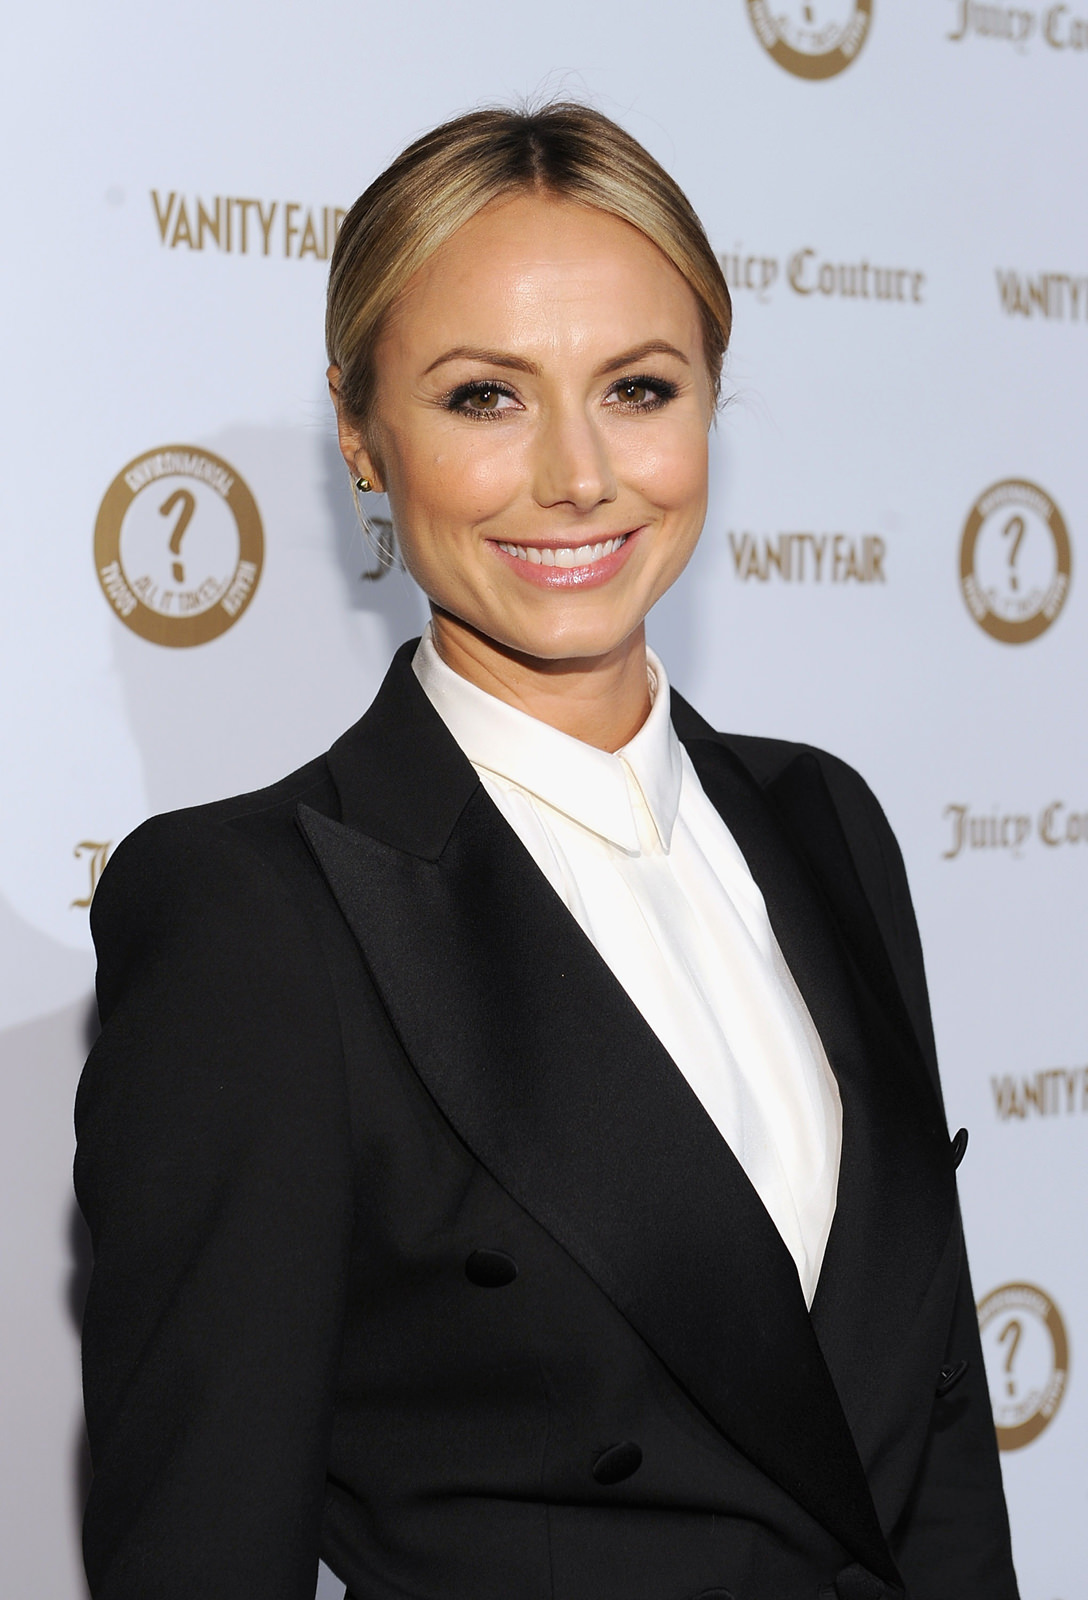 Stacy Keibler Photo Gallery